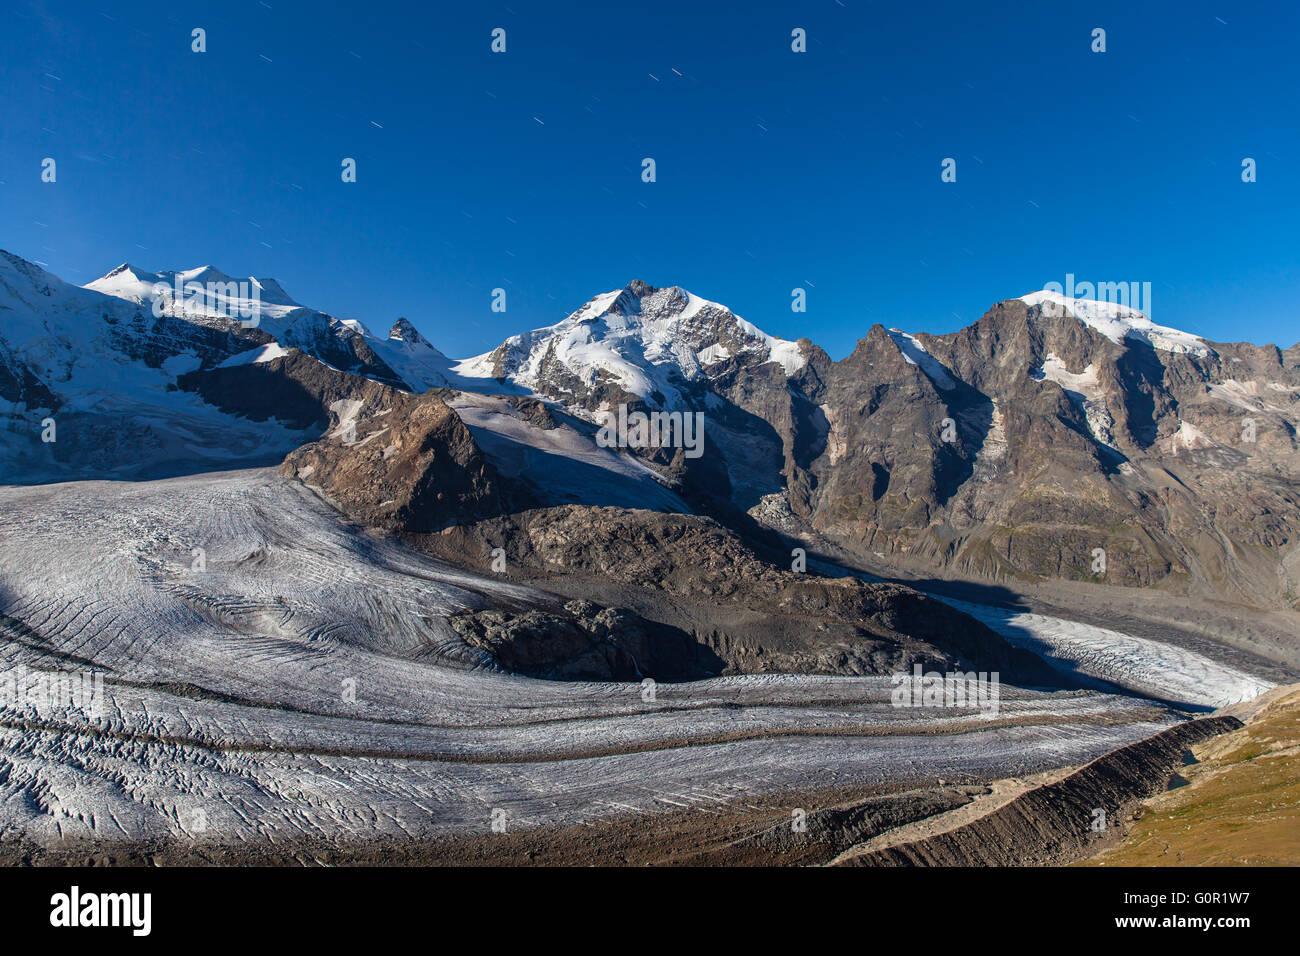 Night view of the Bernina massive and Morteratsch glacier at the mountain house of Diavolezza, in Engadine area - Stock Image